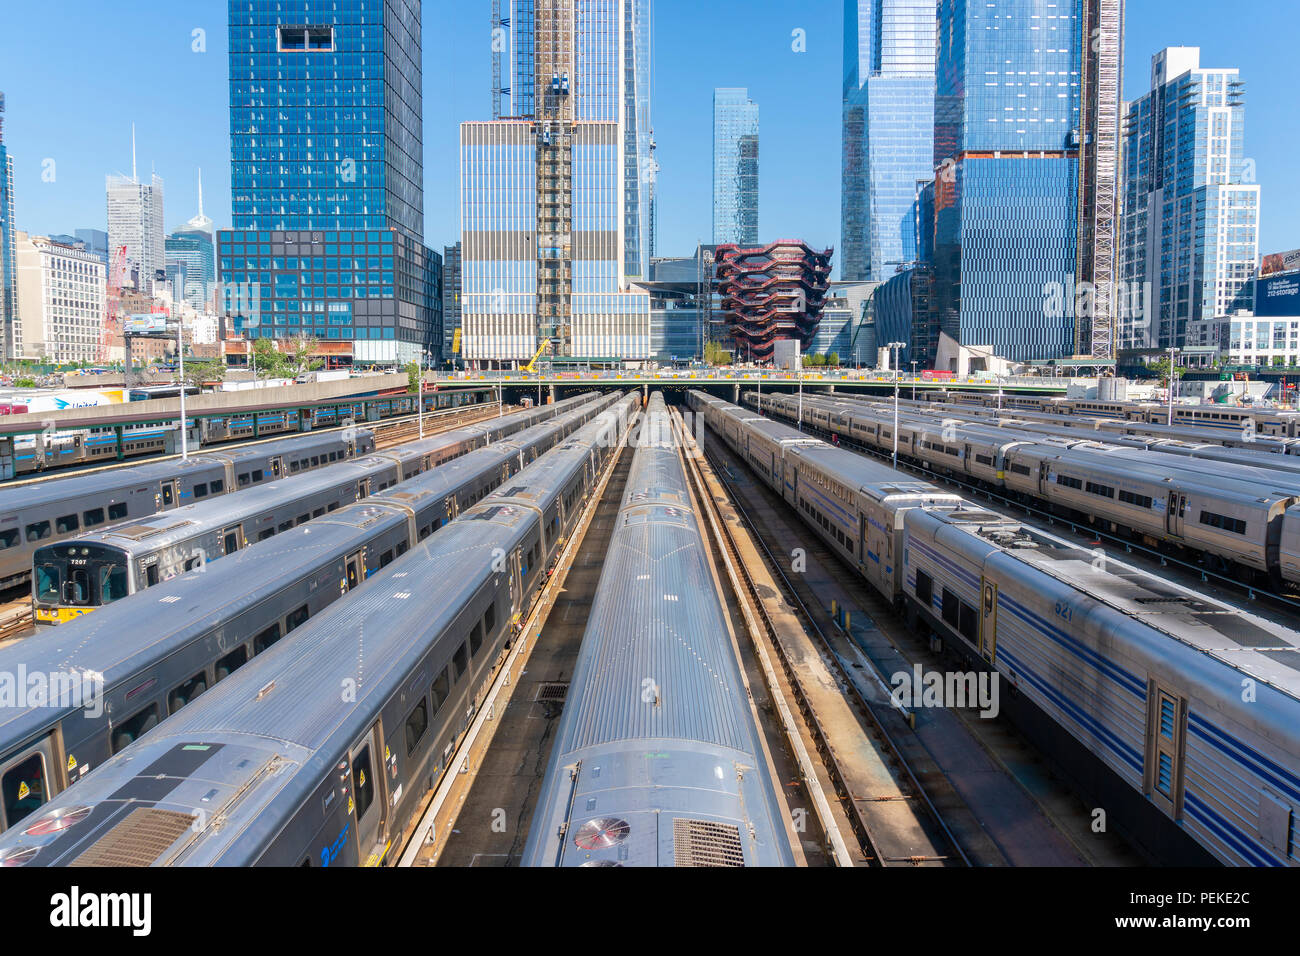 Les trains dans le Hudson Yards et Manhattan skyline Photo Stock